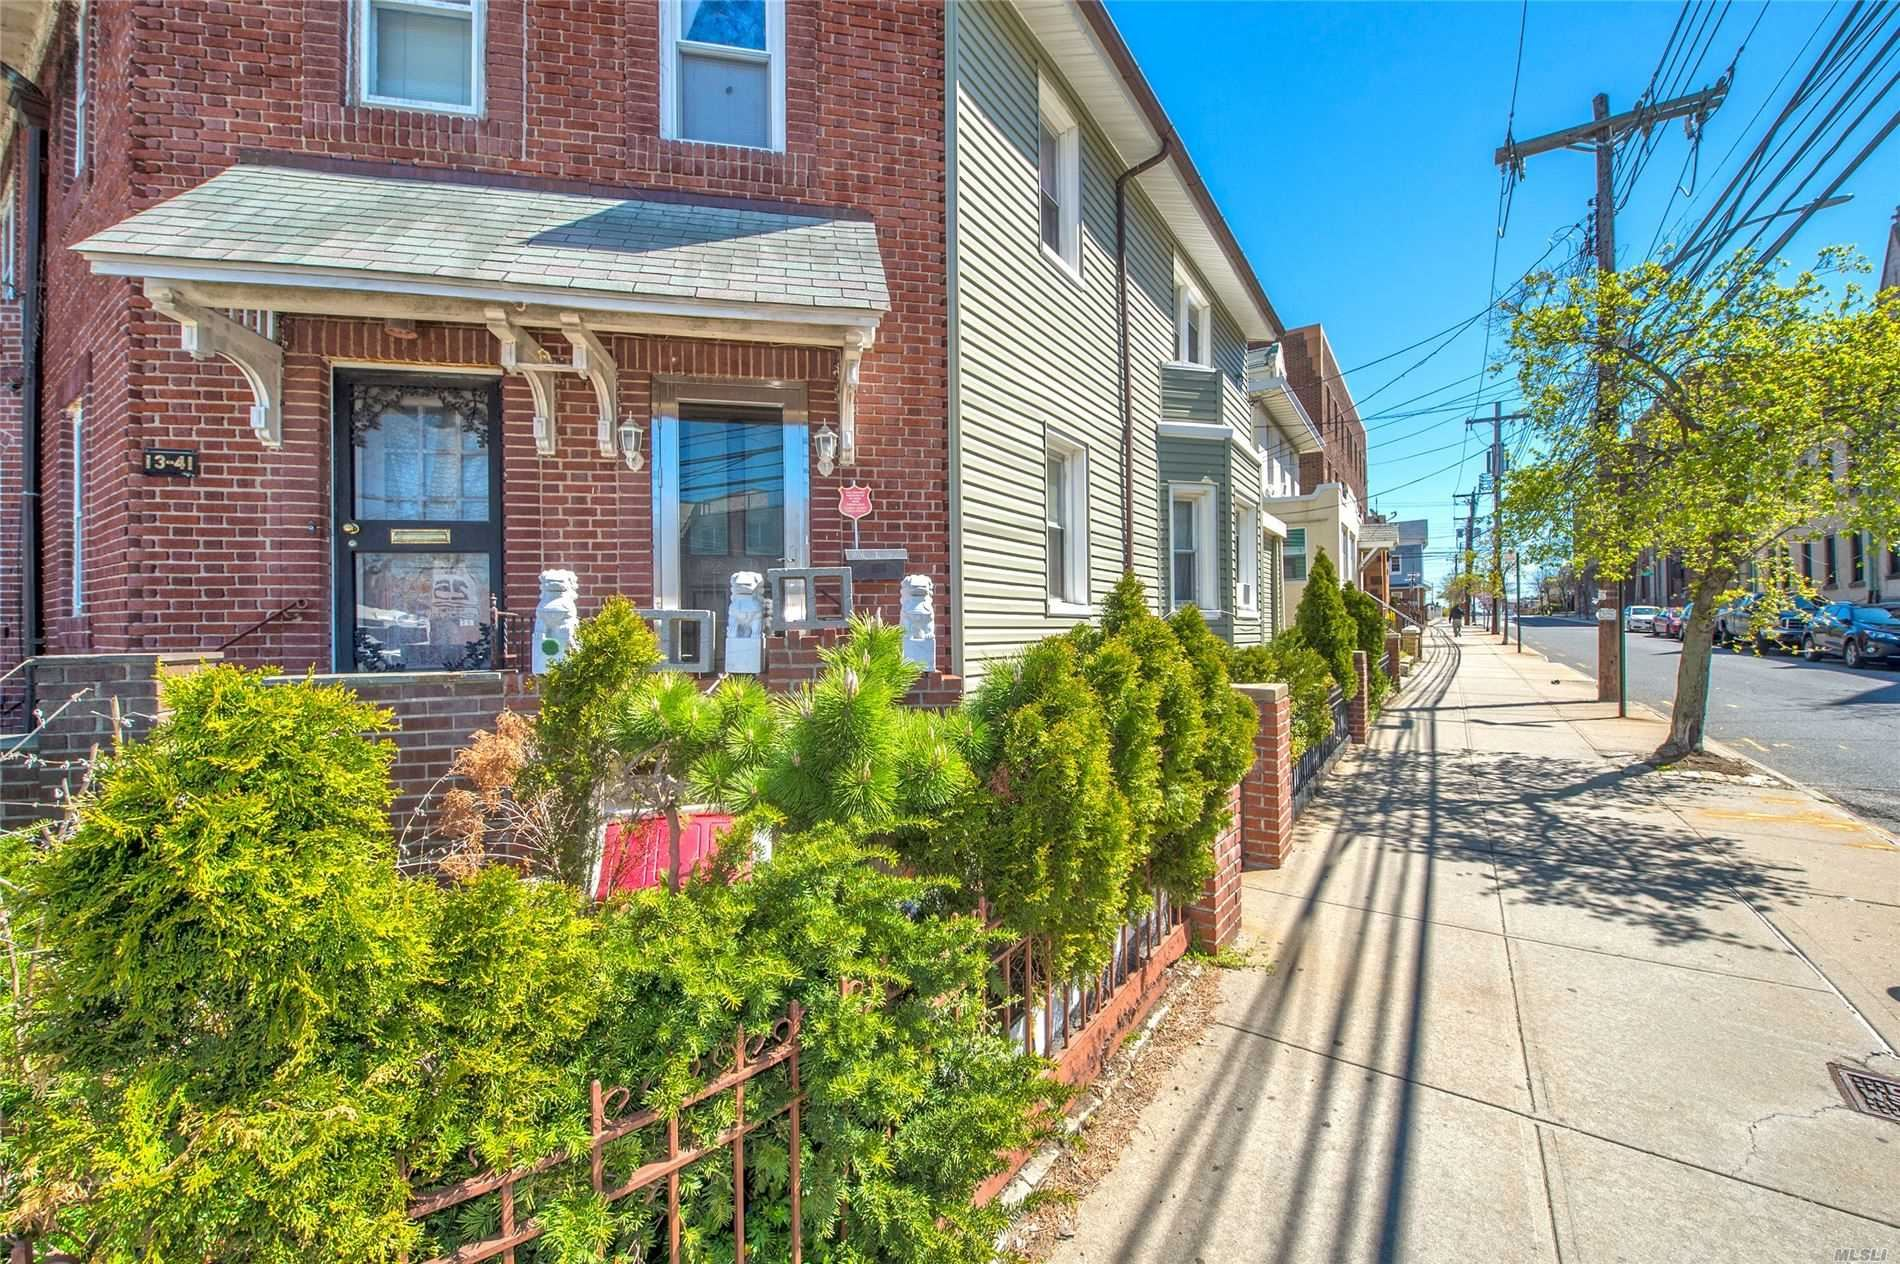 123-01 14th Avenue, College Point, NY 11356 - MLS#: 3204370